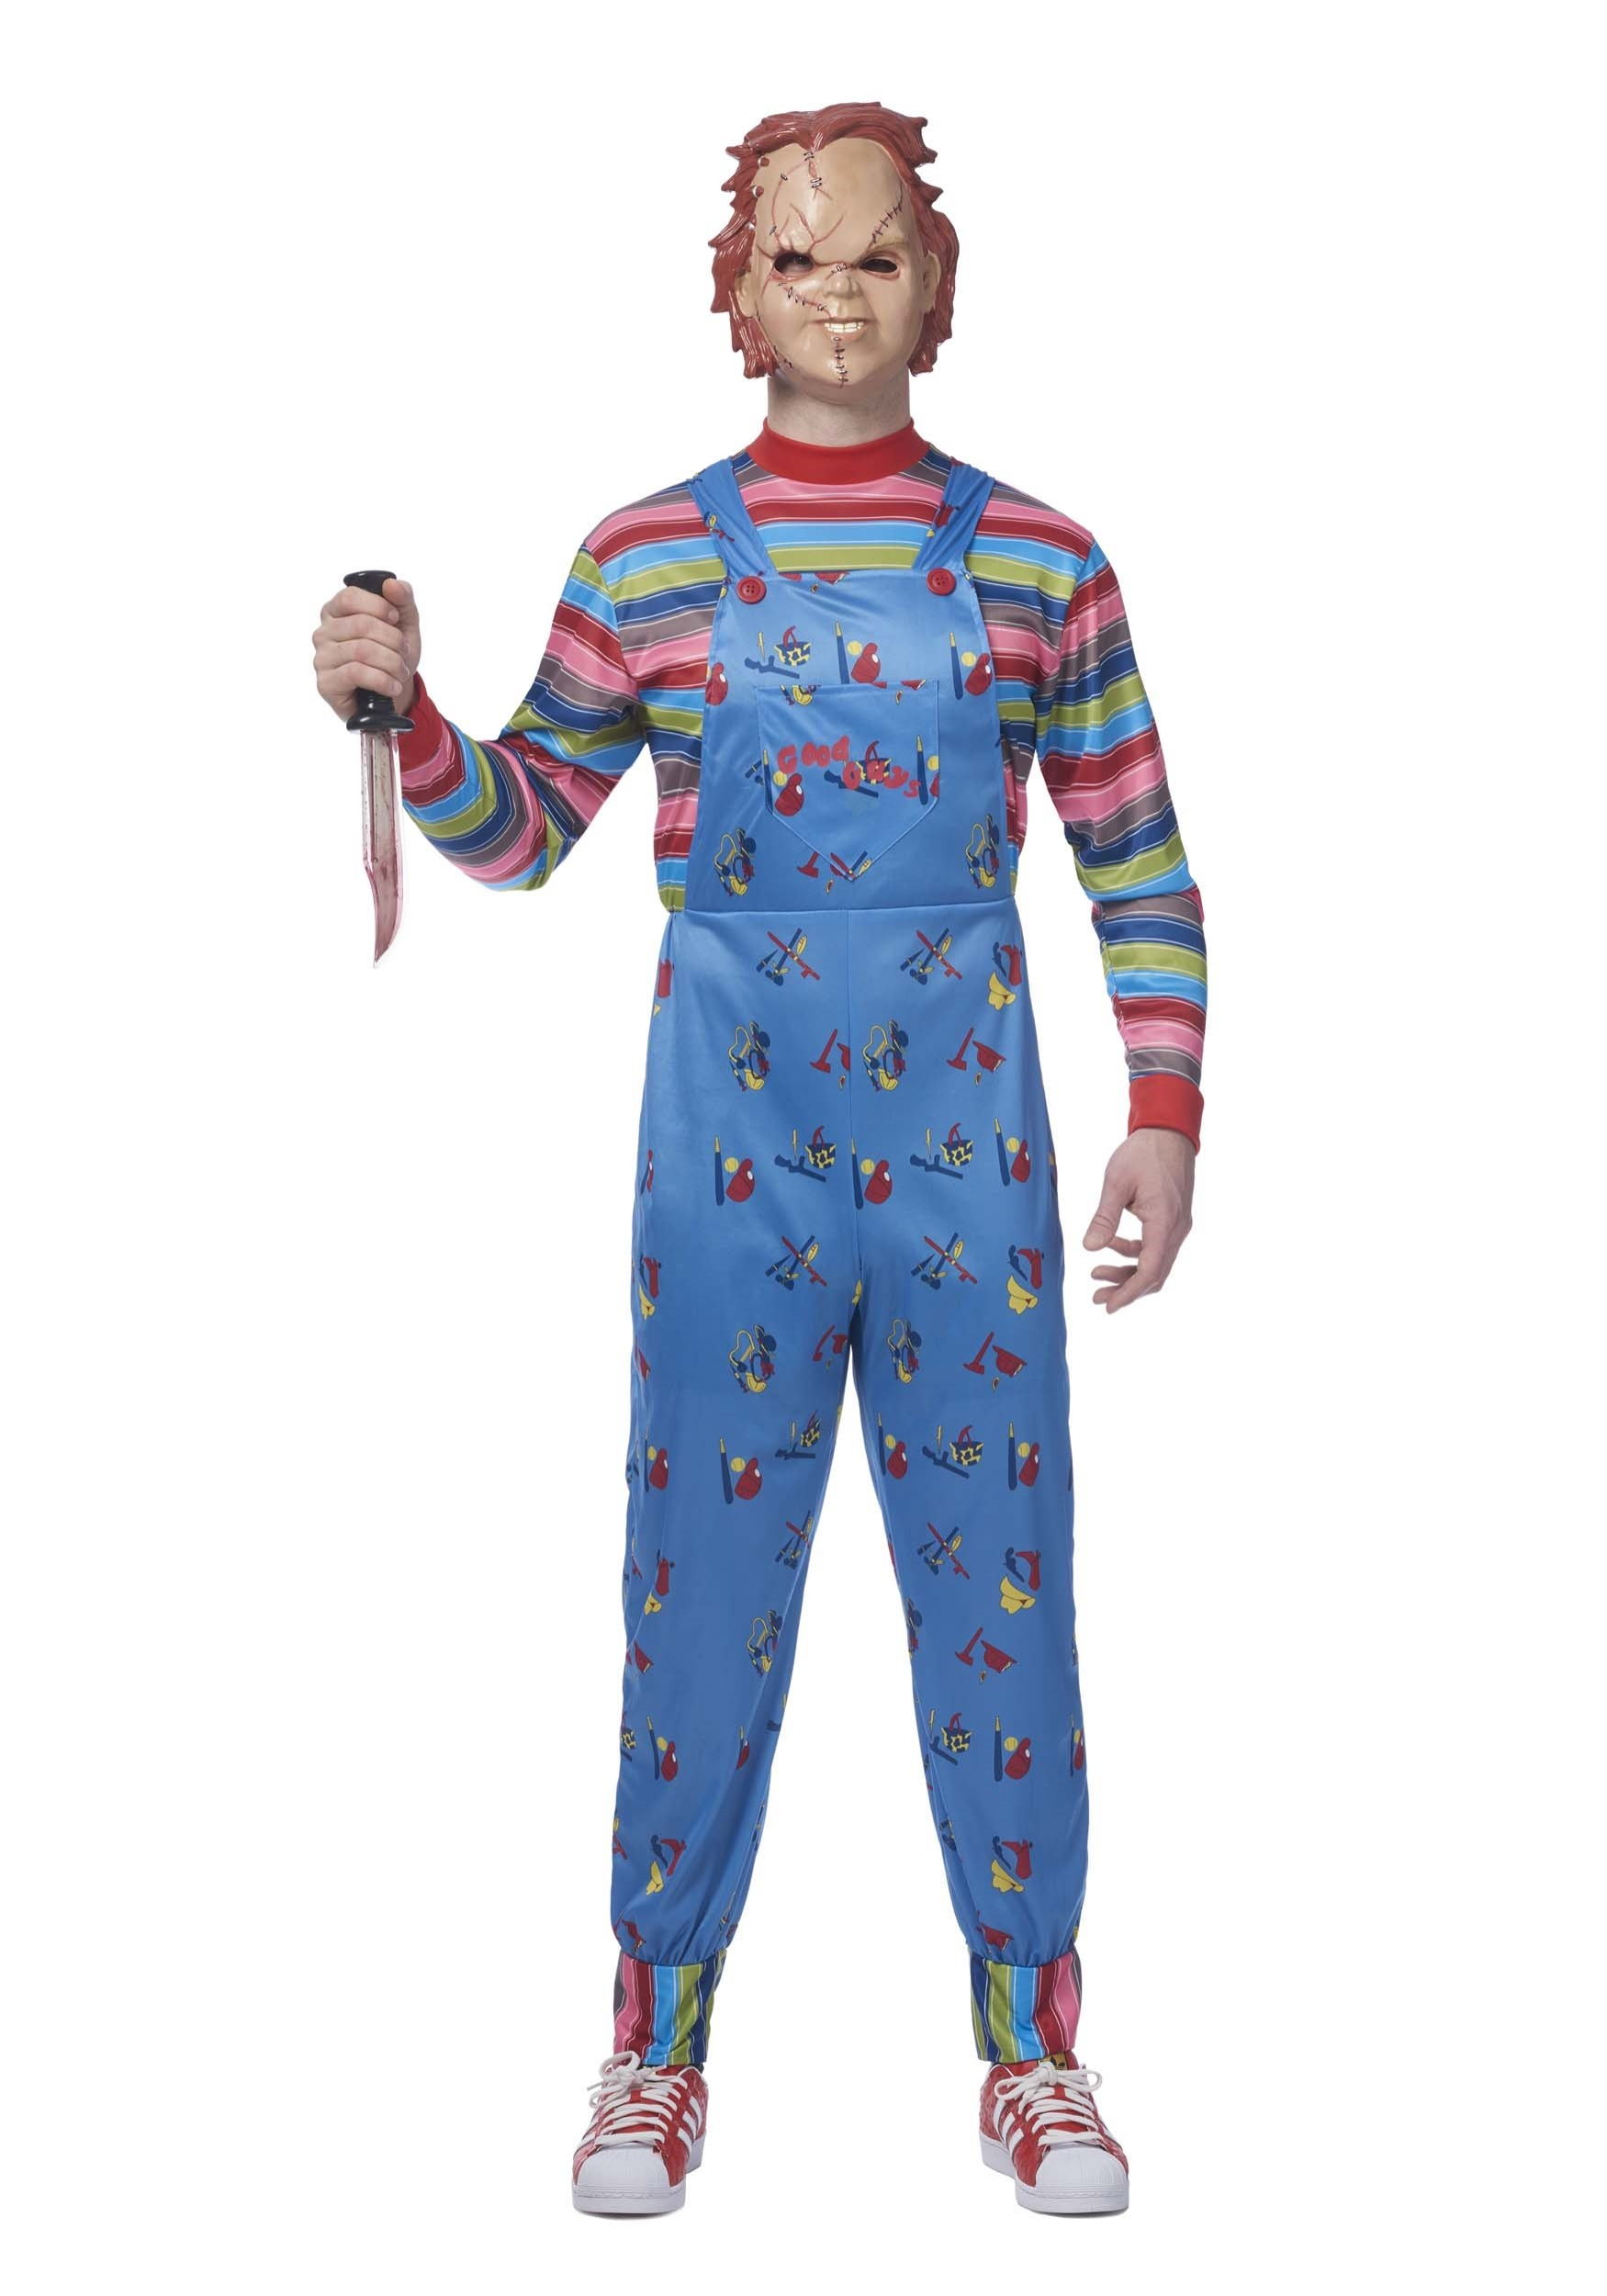 Chucky Plus Size Costume for Men W/ Chucky Mask